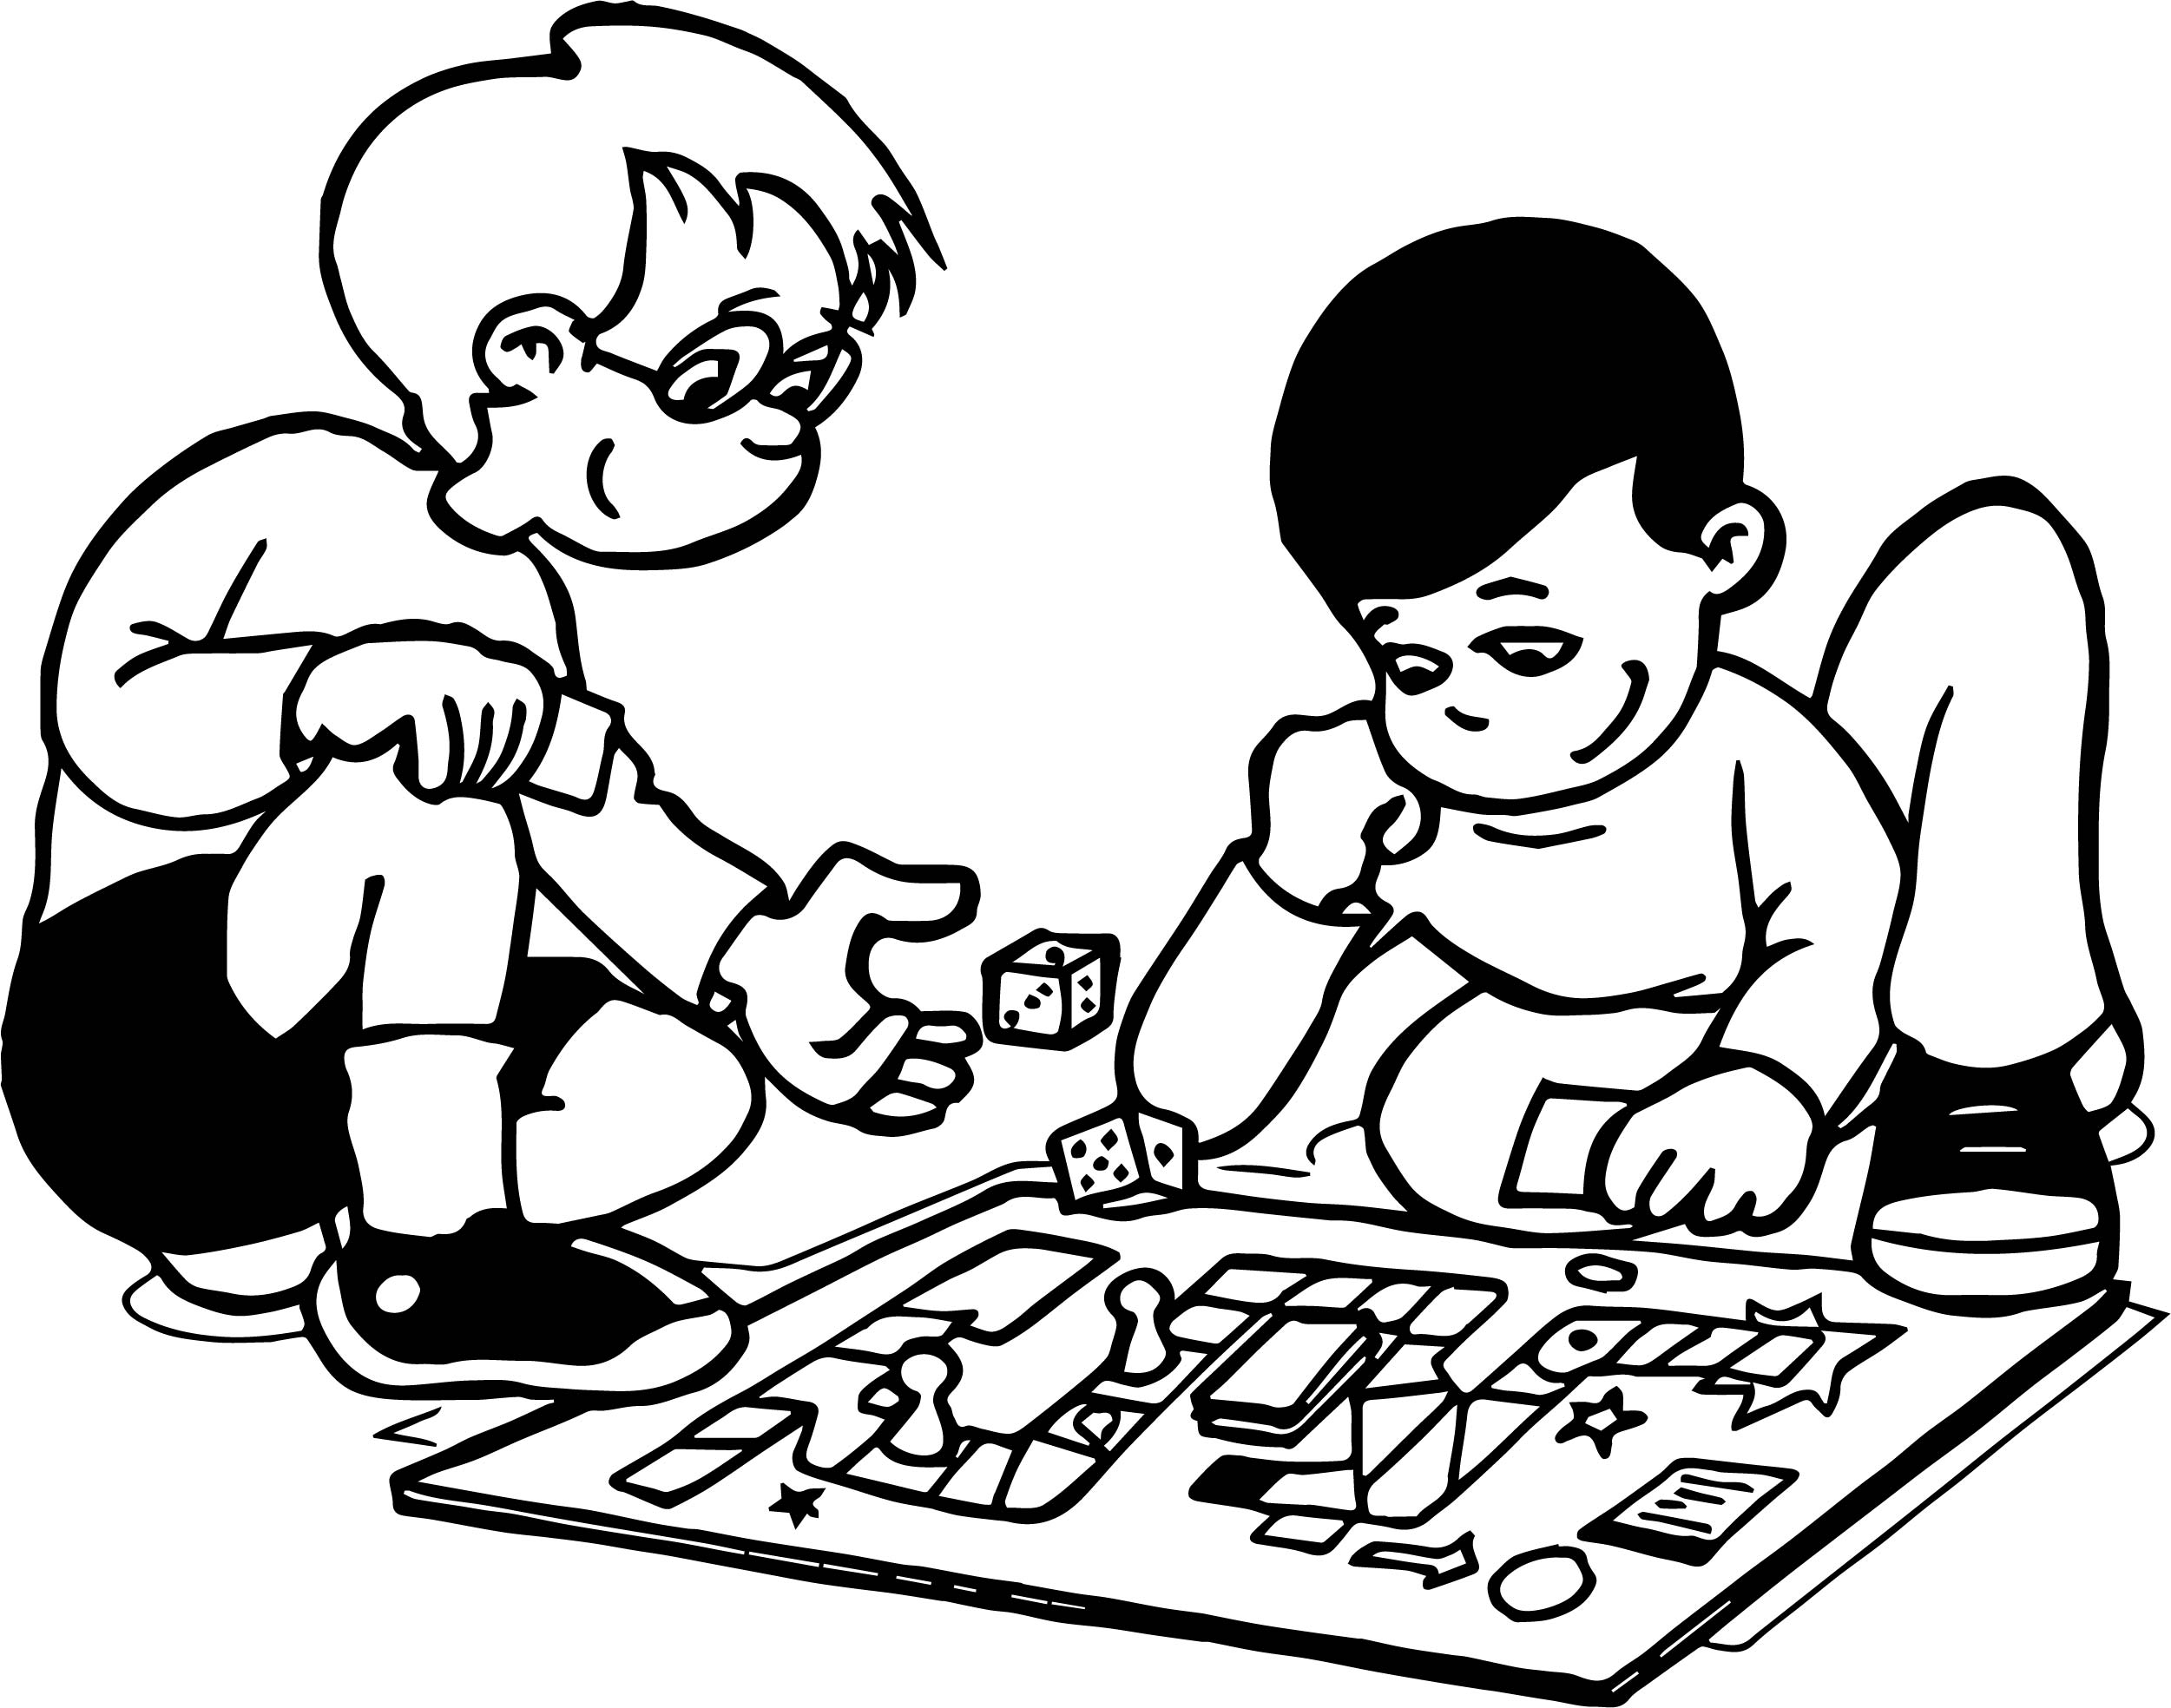 2501x1968 Game Coloring Pages Game Coloring Pages Coloring Page Game